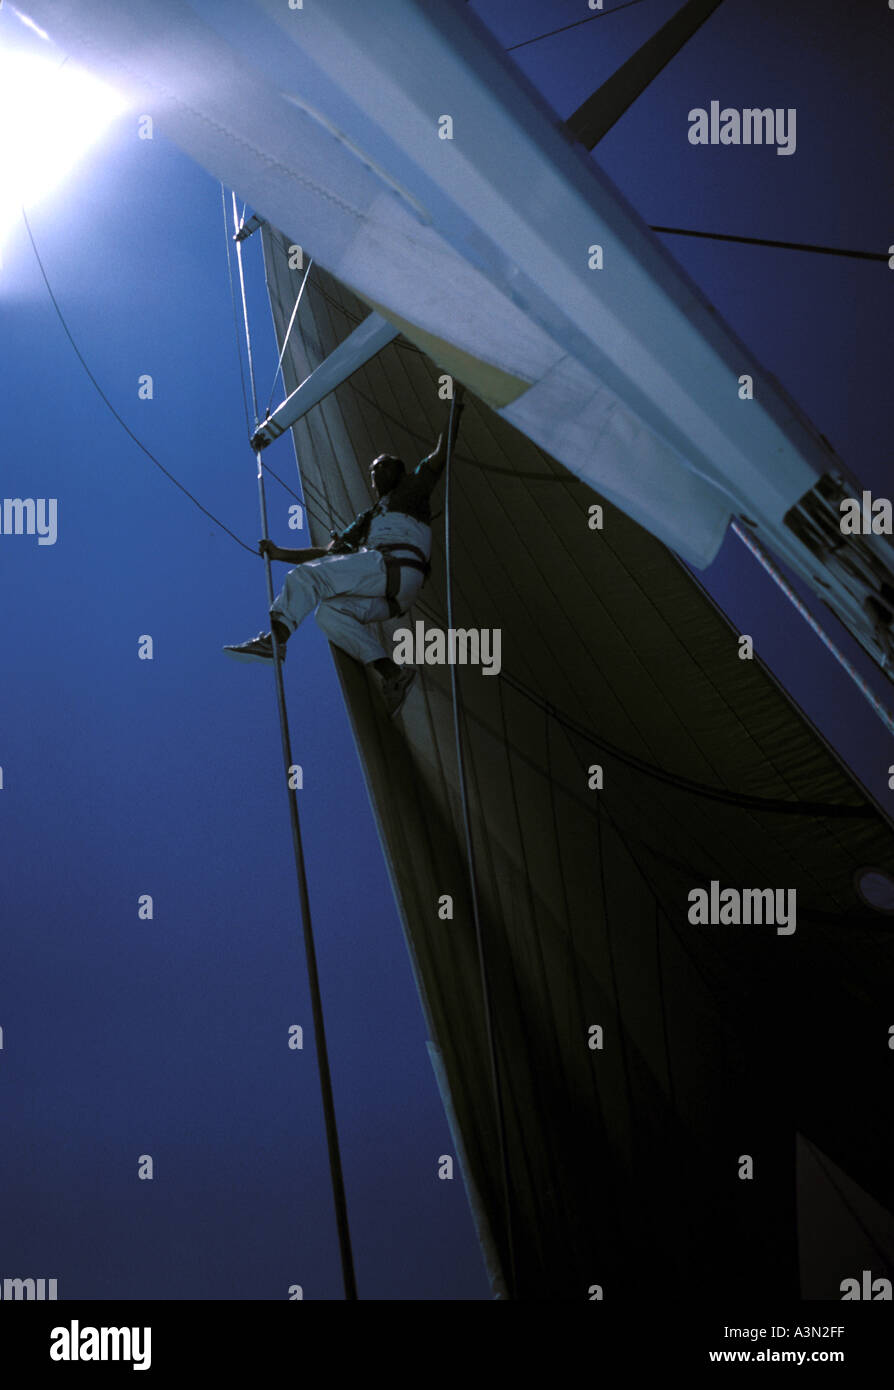 Sailor up the mast - Stock Image